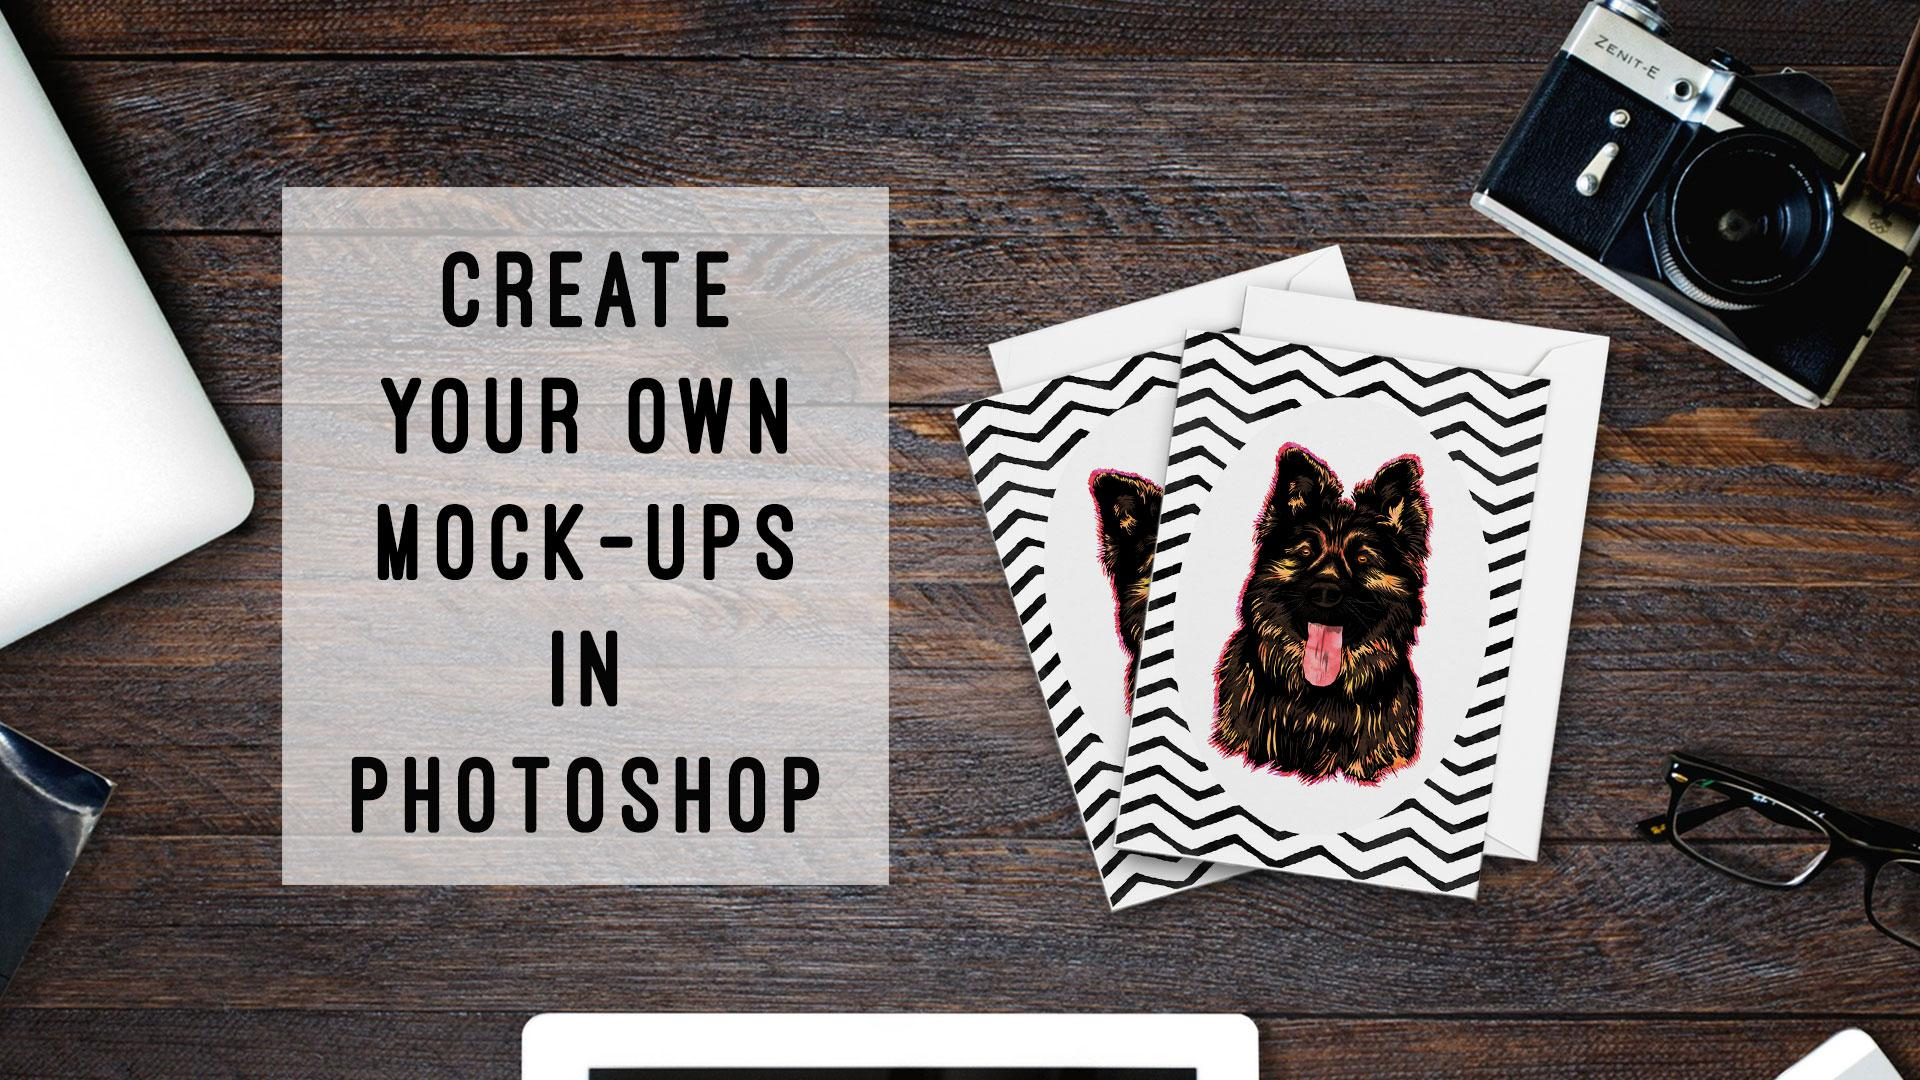 Create Your Own Mock-ups In Photoshop - Beginners